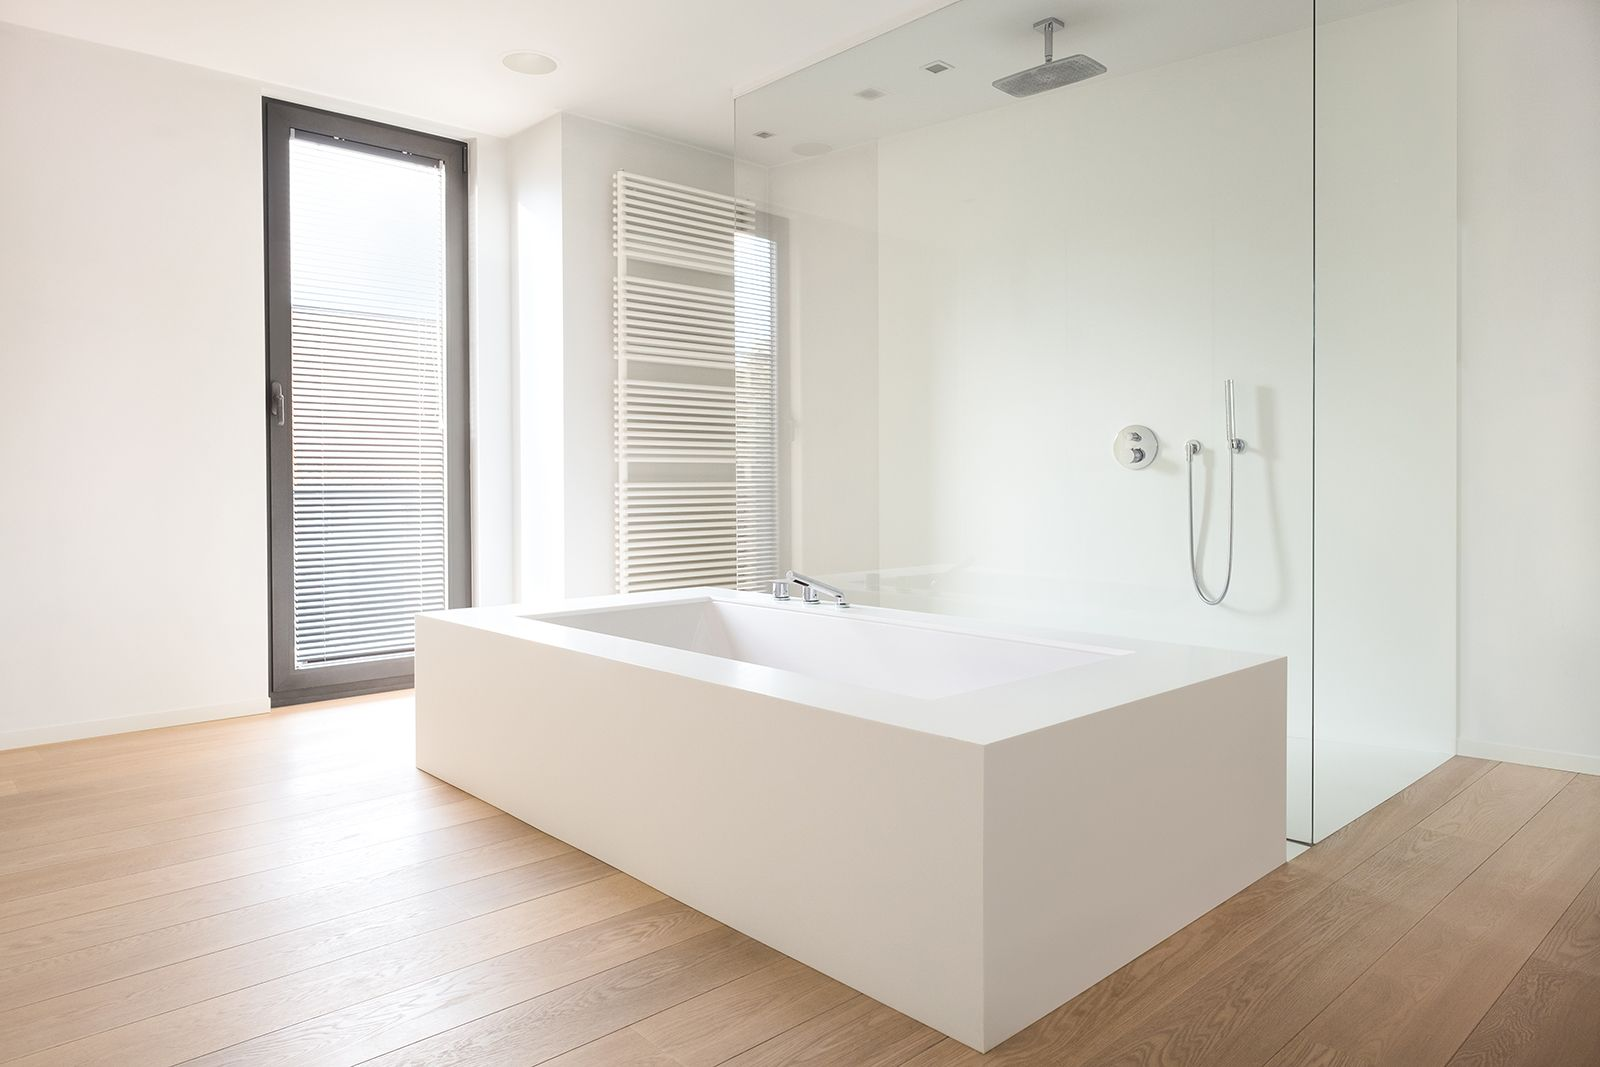 studio edge • interior design • design of a residential bathroom • freestanding bath • www.studio-edge.be